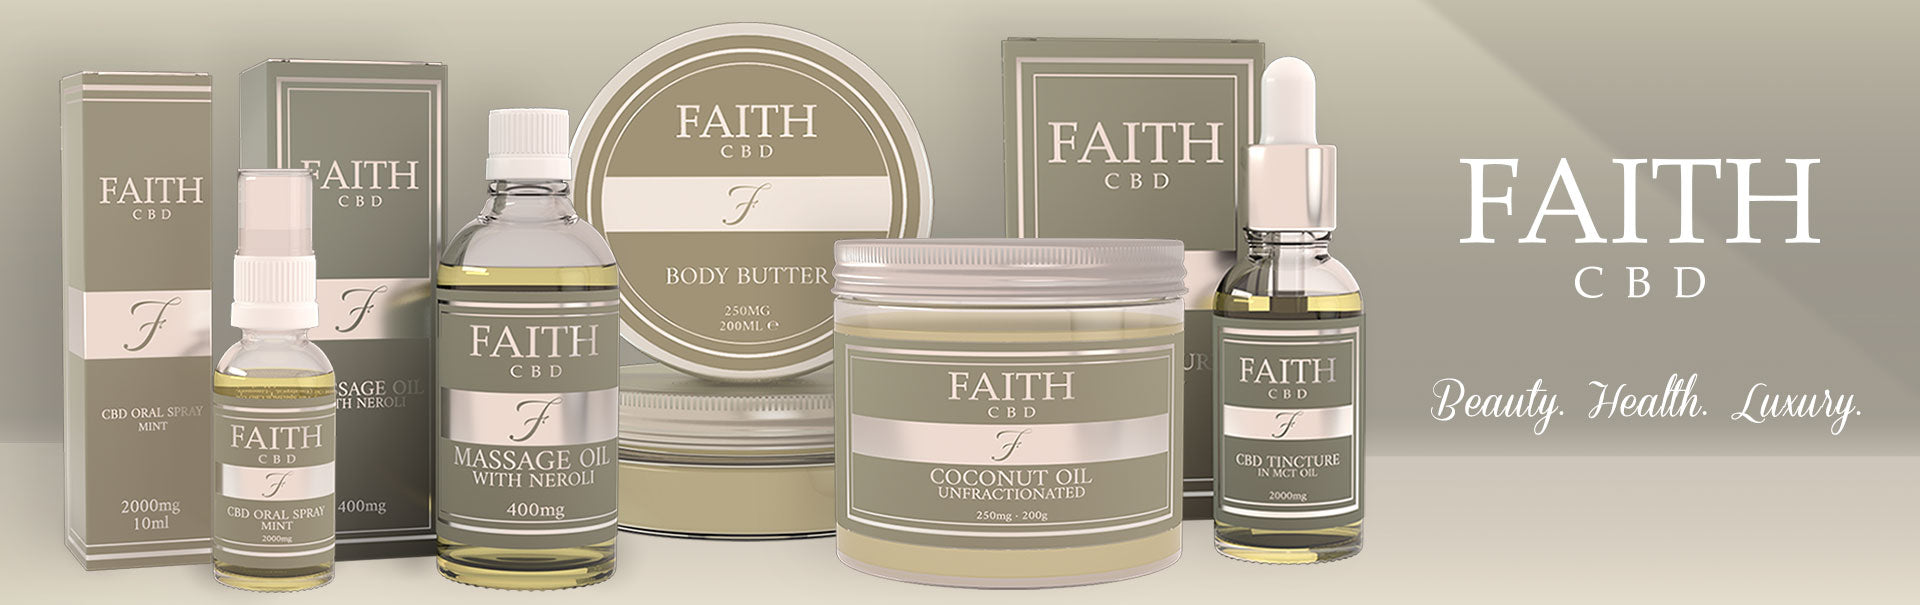 Faith CBD